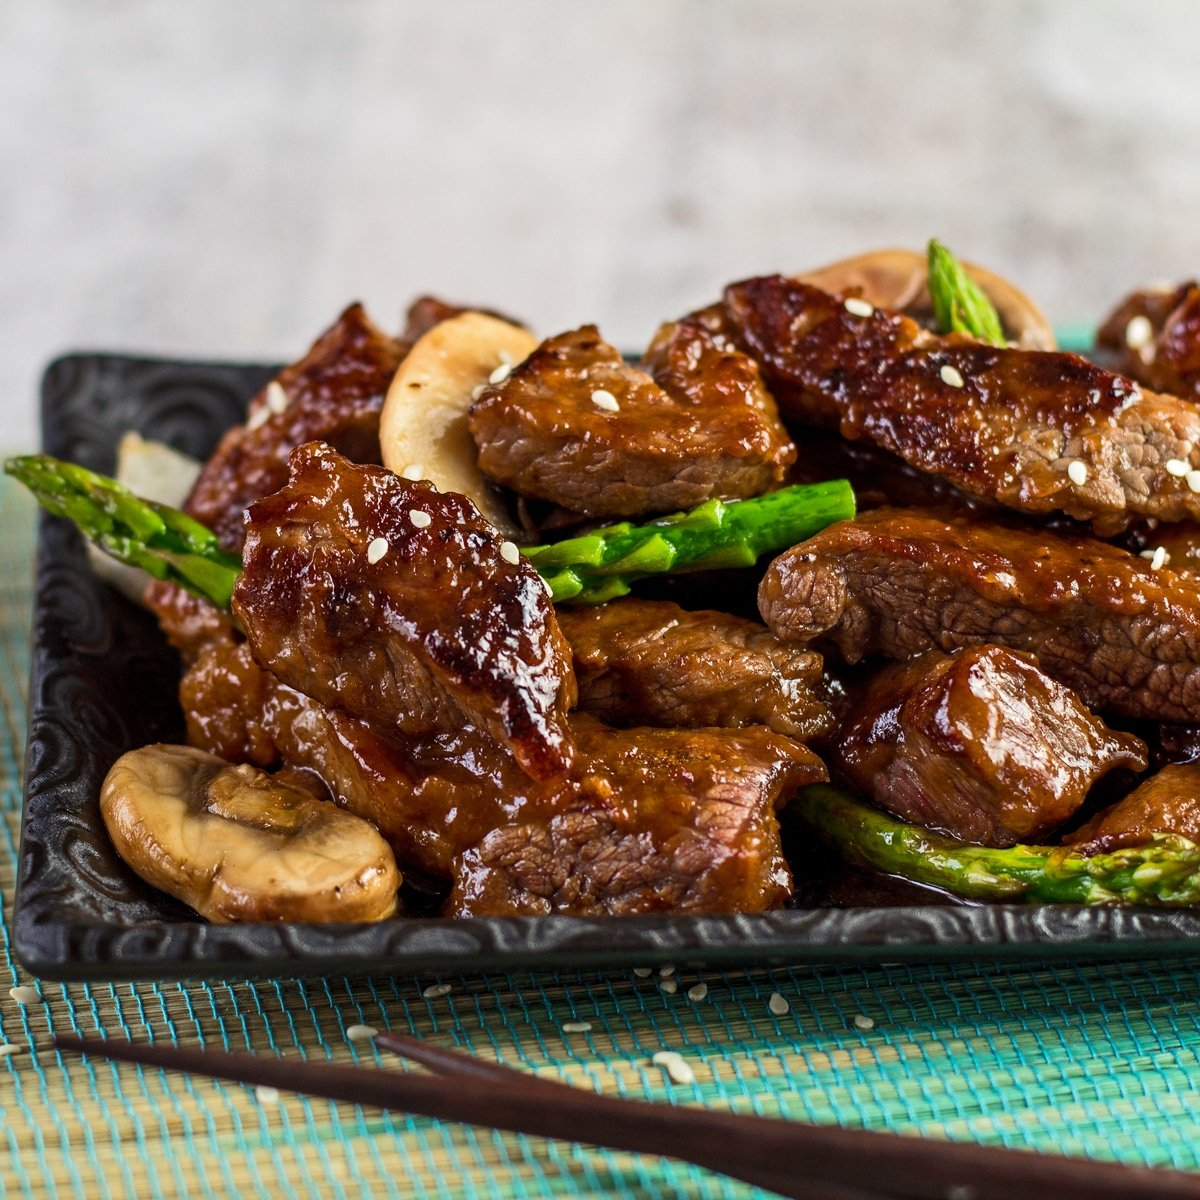 Large square angled view of the left half of the served plate of panda express shanghai angus steak after being wok fried with onion mushroom and asparagus then tossed in the shanghai sauce.